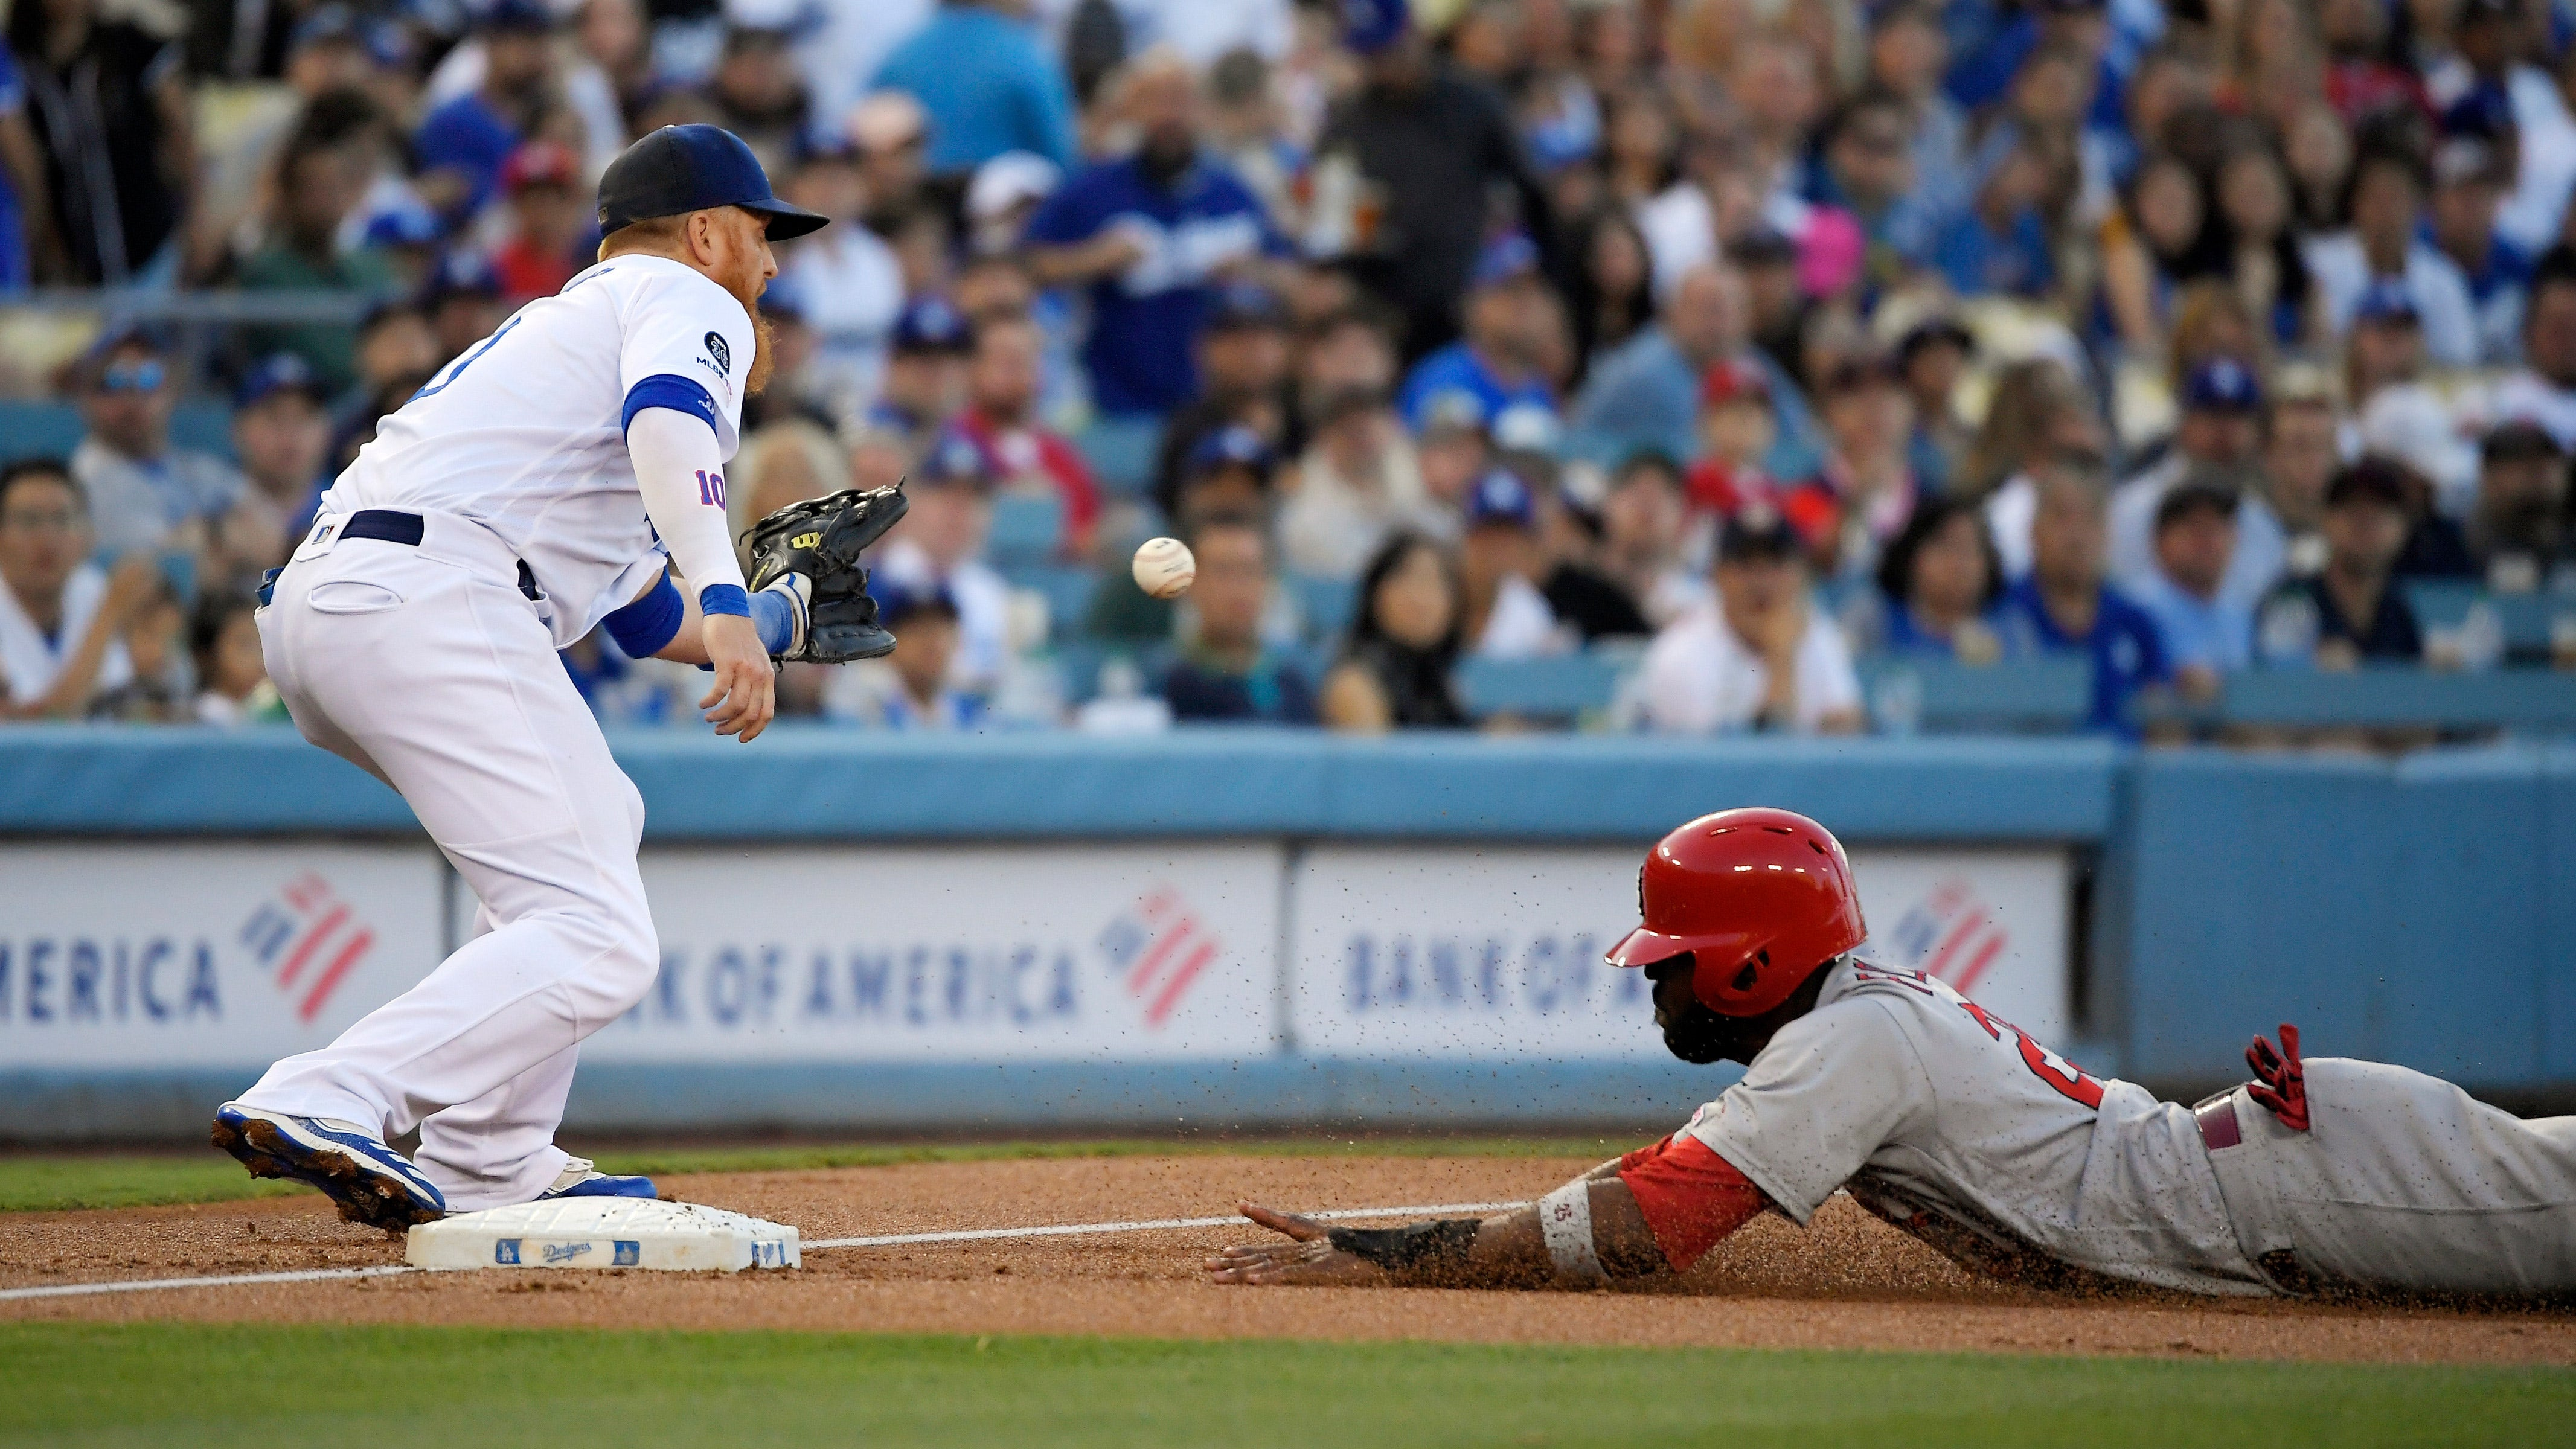 97fc77bc Cards struggle to find clutch hits, fall to Dodgers 3-1   FOX Sports